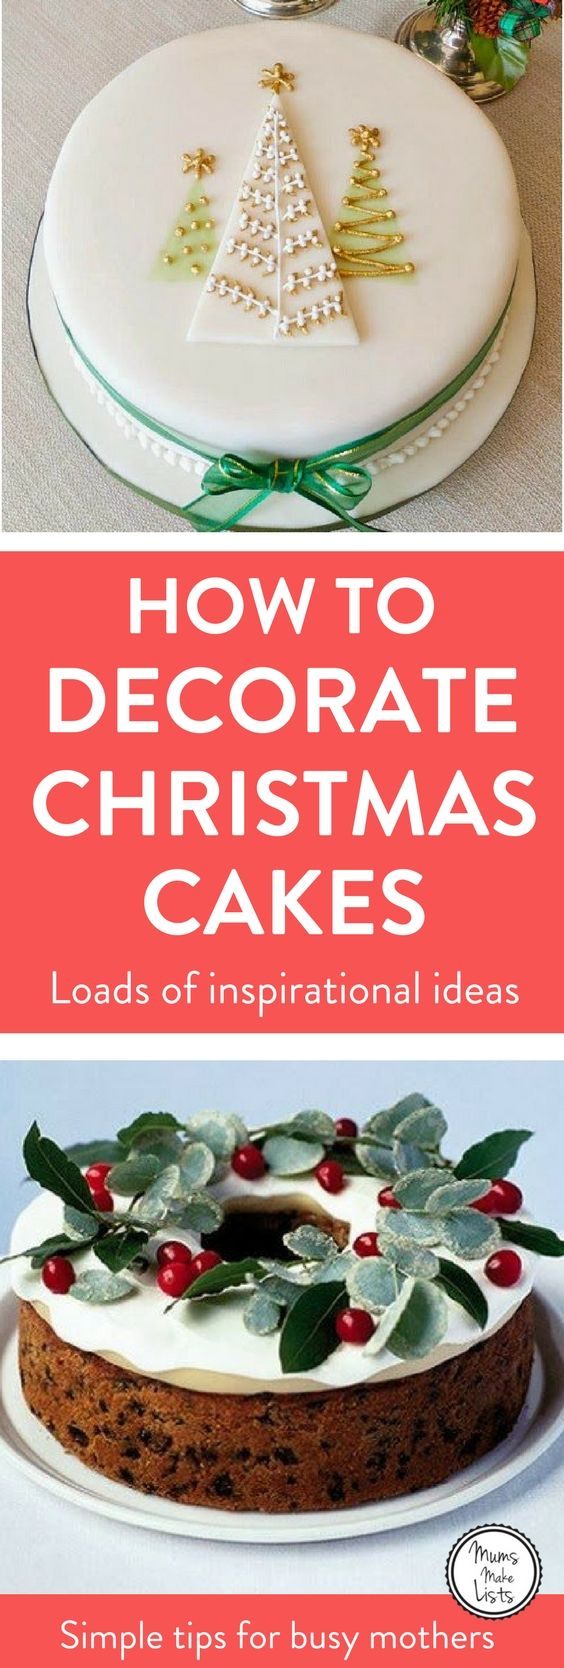 Christmas cake decorations - ideas for decorating Christmas cakes, from simple ideas to totally awesome, beautiful creations, both traditional and modern #Christmas2017 #Christmas #ChristmasCake #ChristmasCakes #ChristmasCakeDecorationIdeas #ChristmasCakeIdeas #ChristmasCake2017 #ChristmasFood